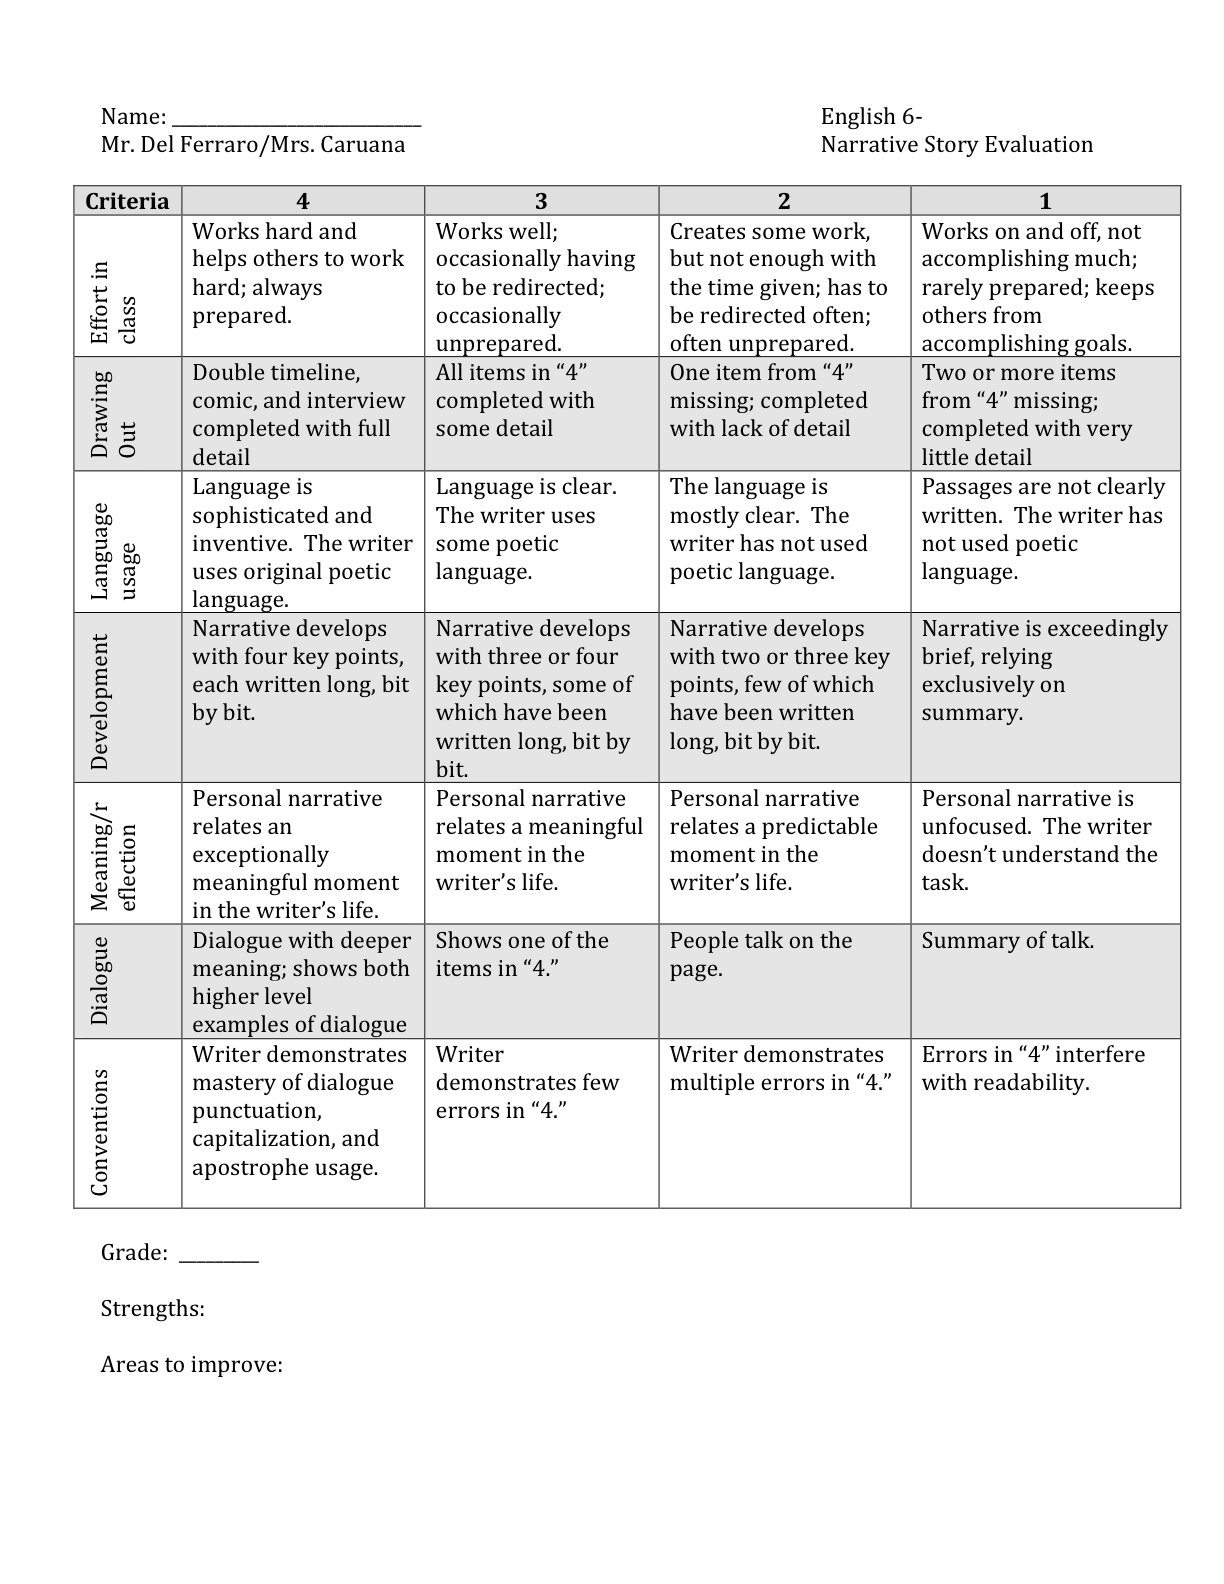 narrativestoryrubric jpg essay for table manners